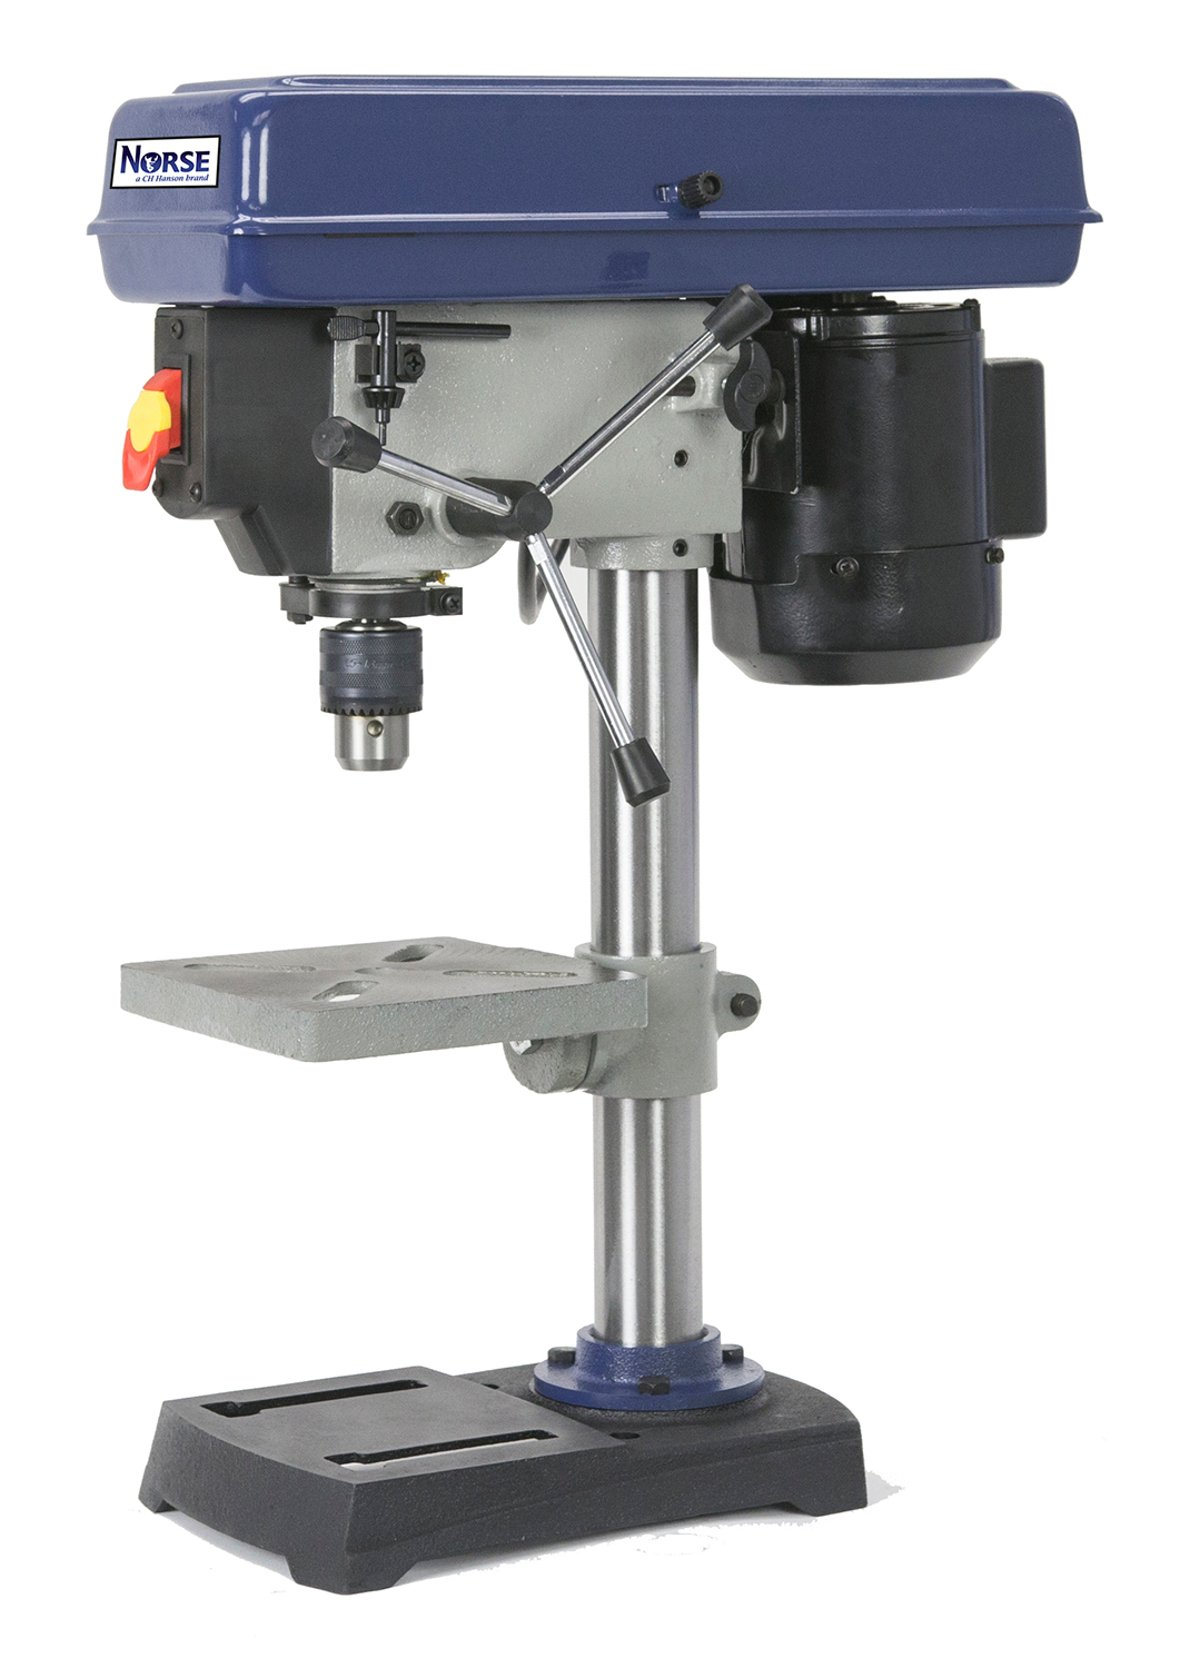 Norse 9680202 Bench Top Drill Press